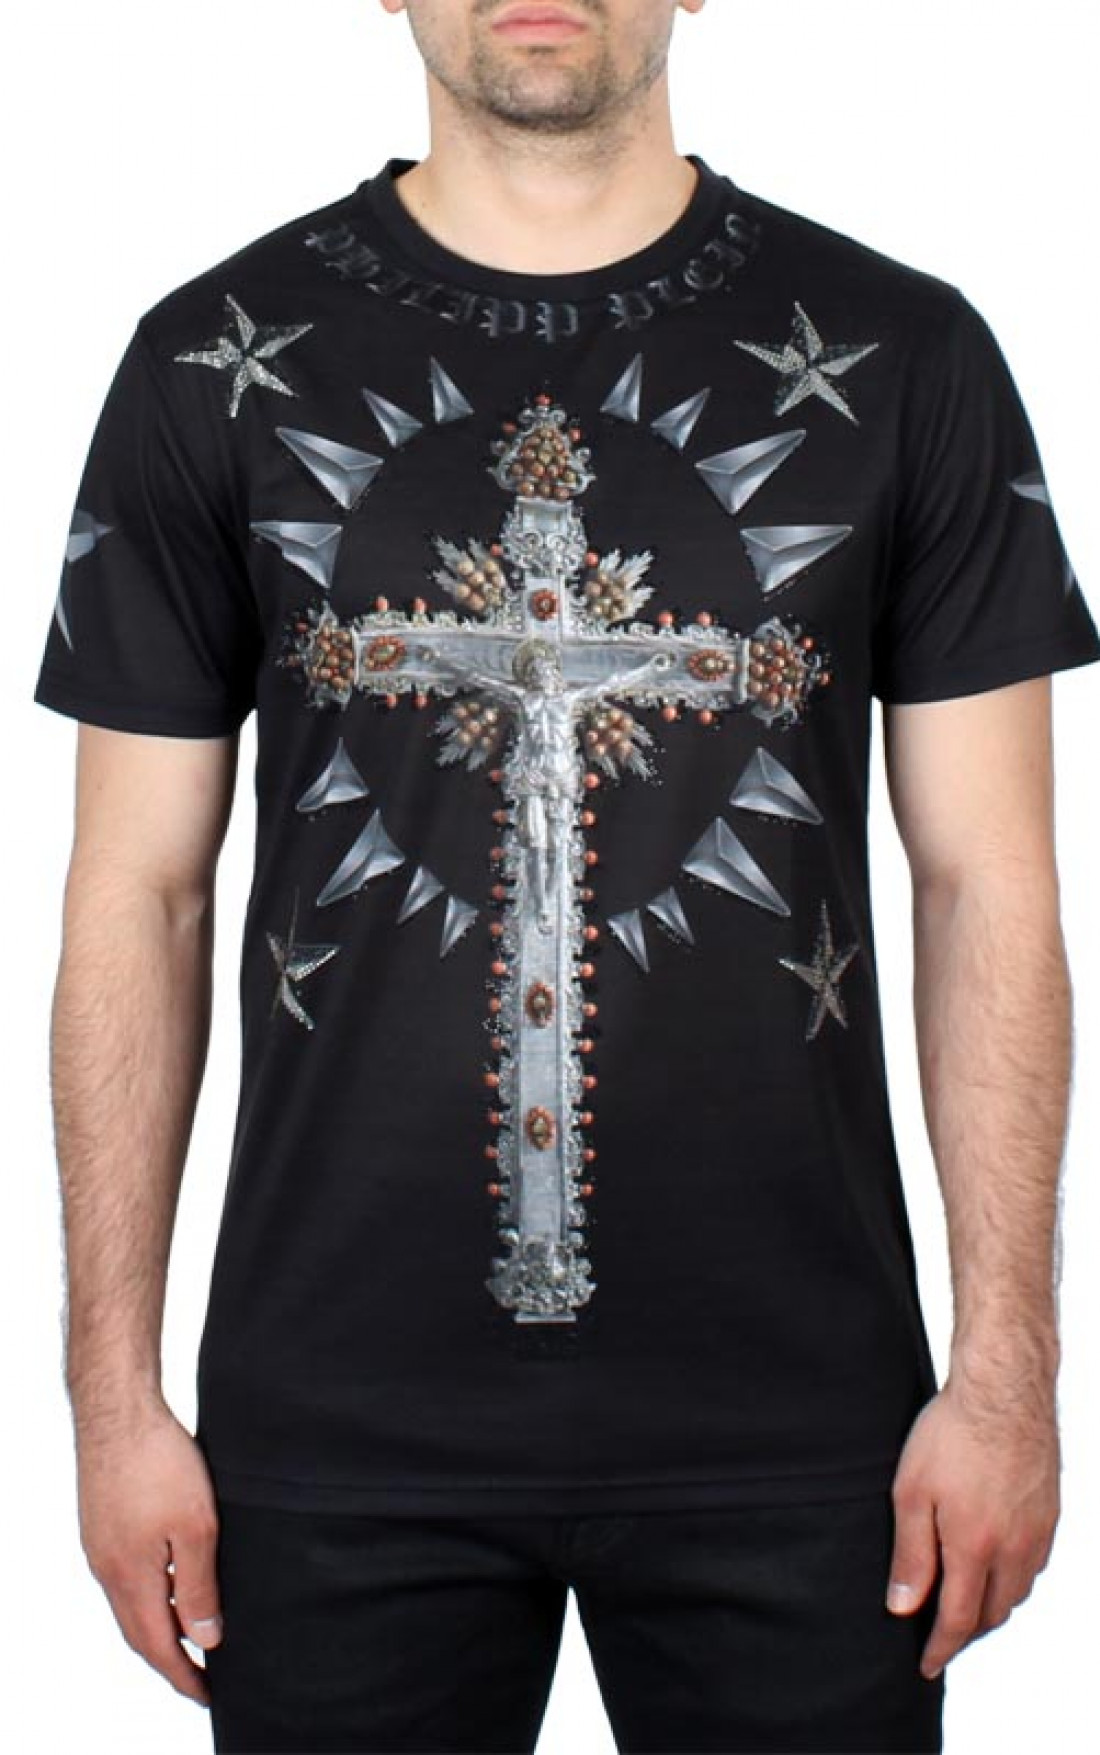 philipp plein 39 tee cross 39 t shirt black boudi uk